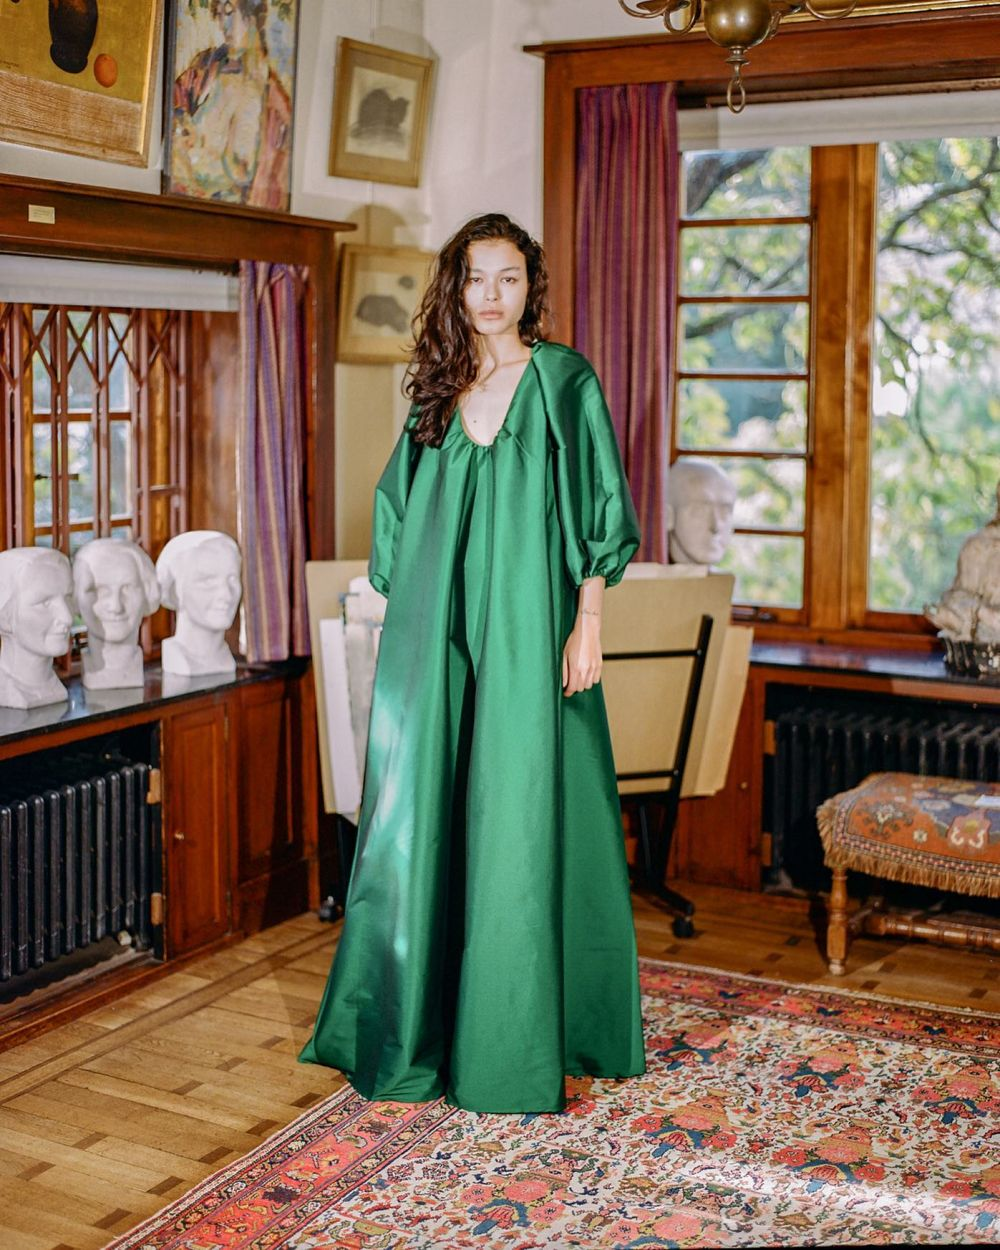 JEWARIA WEARING THE EMERALD GREEN GEORGE DRESS. 💚  Shot at the wonderful Museum Van Buuren ~ capturing the warm and seductive atmosphere of our #PS21 collection.  Photographer @evadonckers  Model @jewaria   Exclusively available @matchesfashion. #PS21